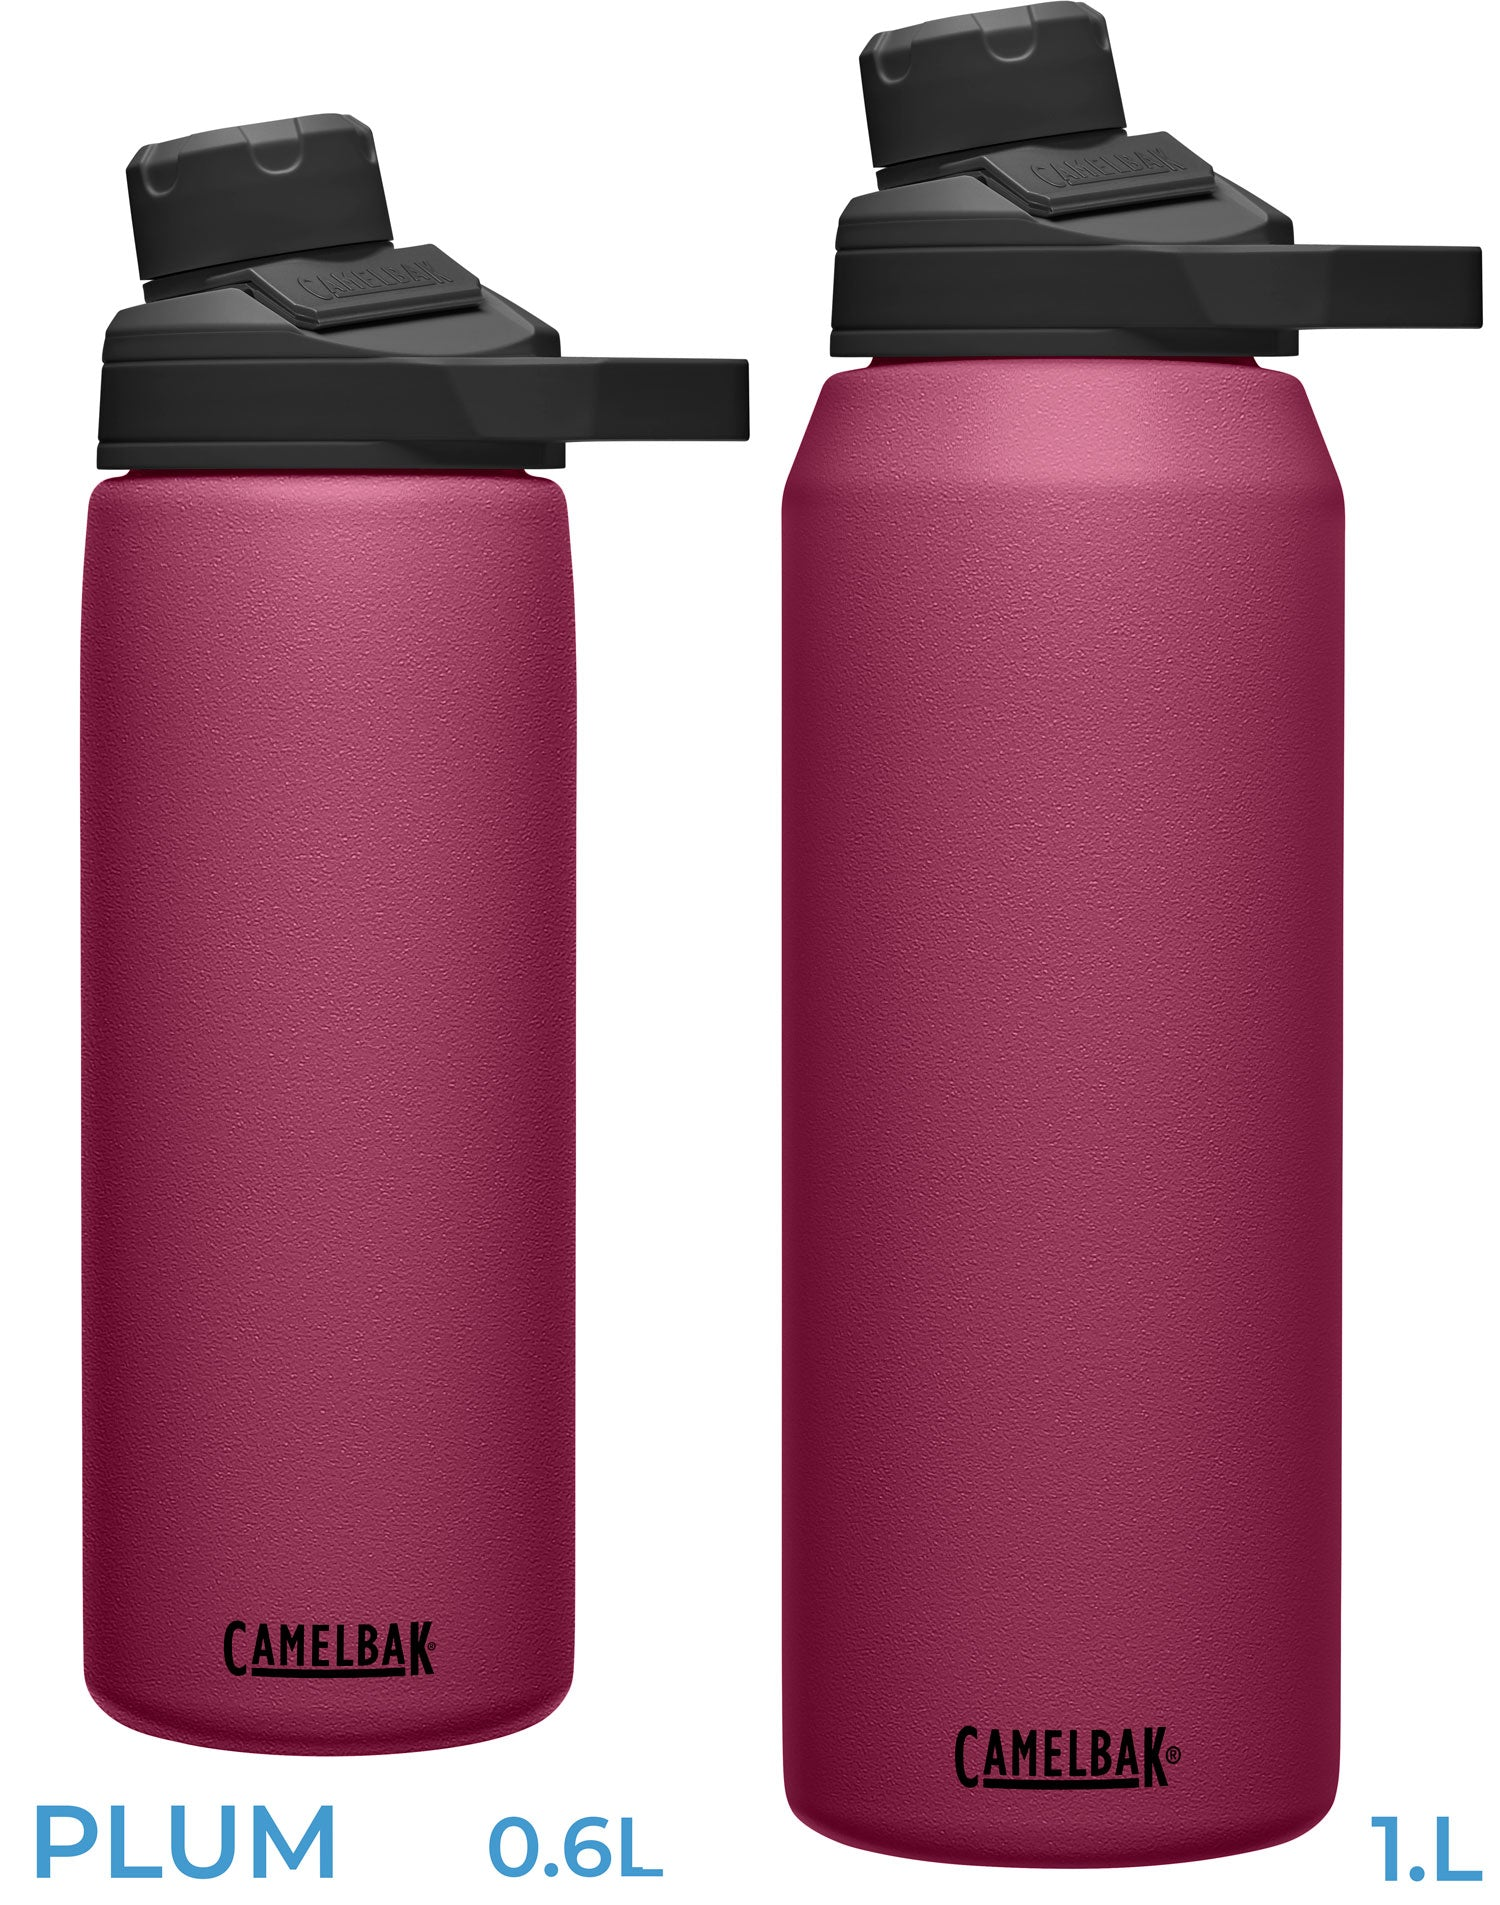 Plum CamelBak Chute Vacuum Insulated Bottle